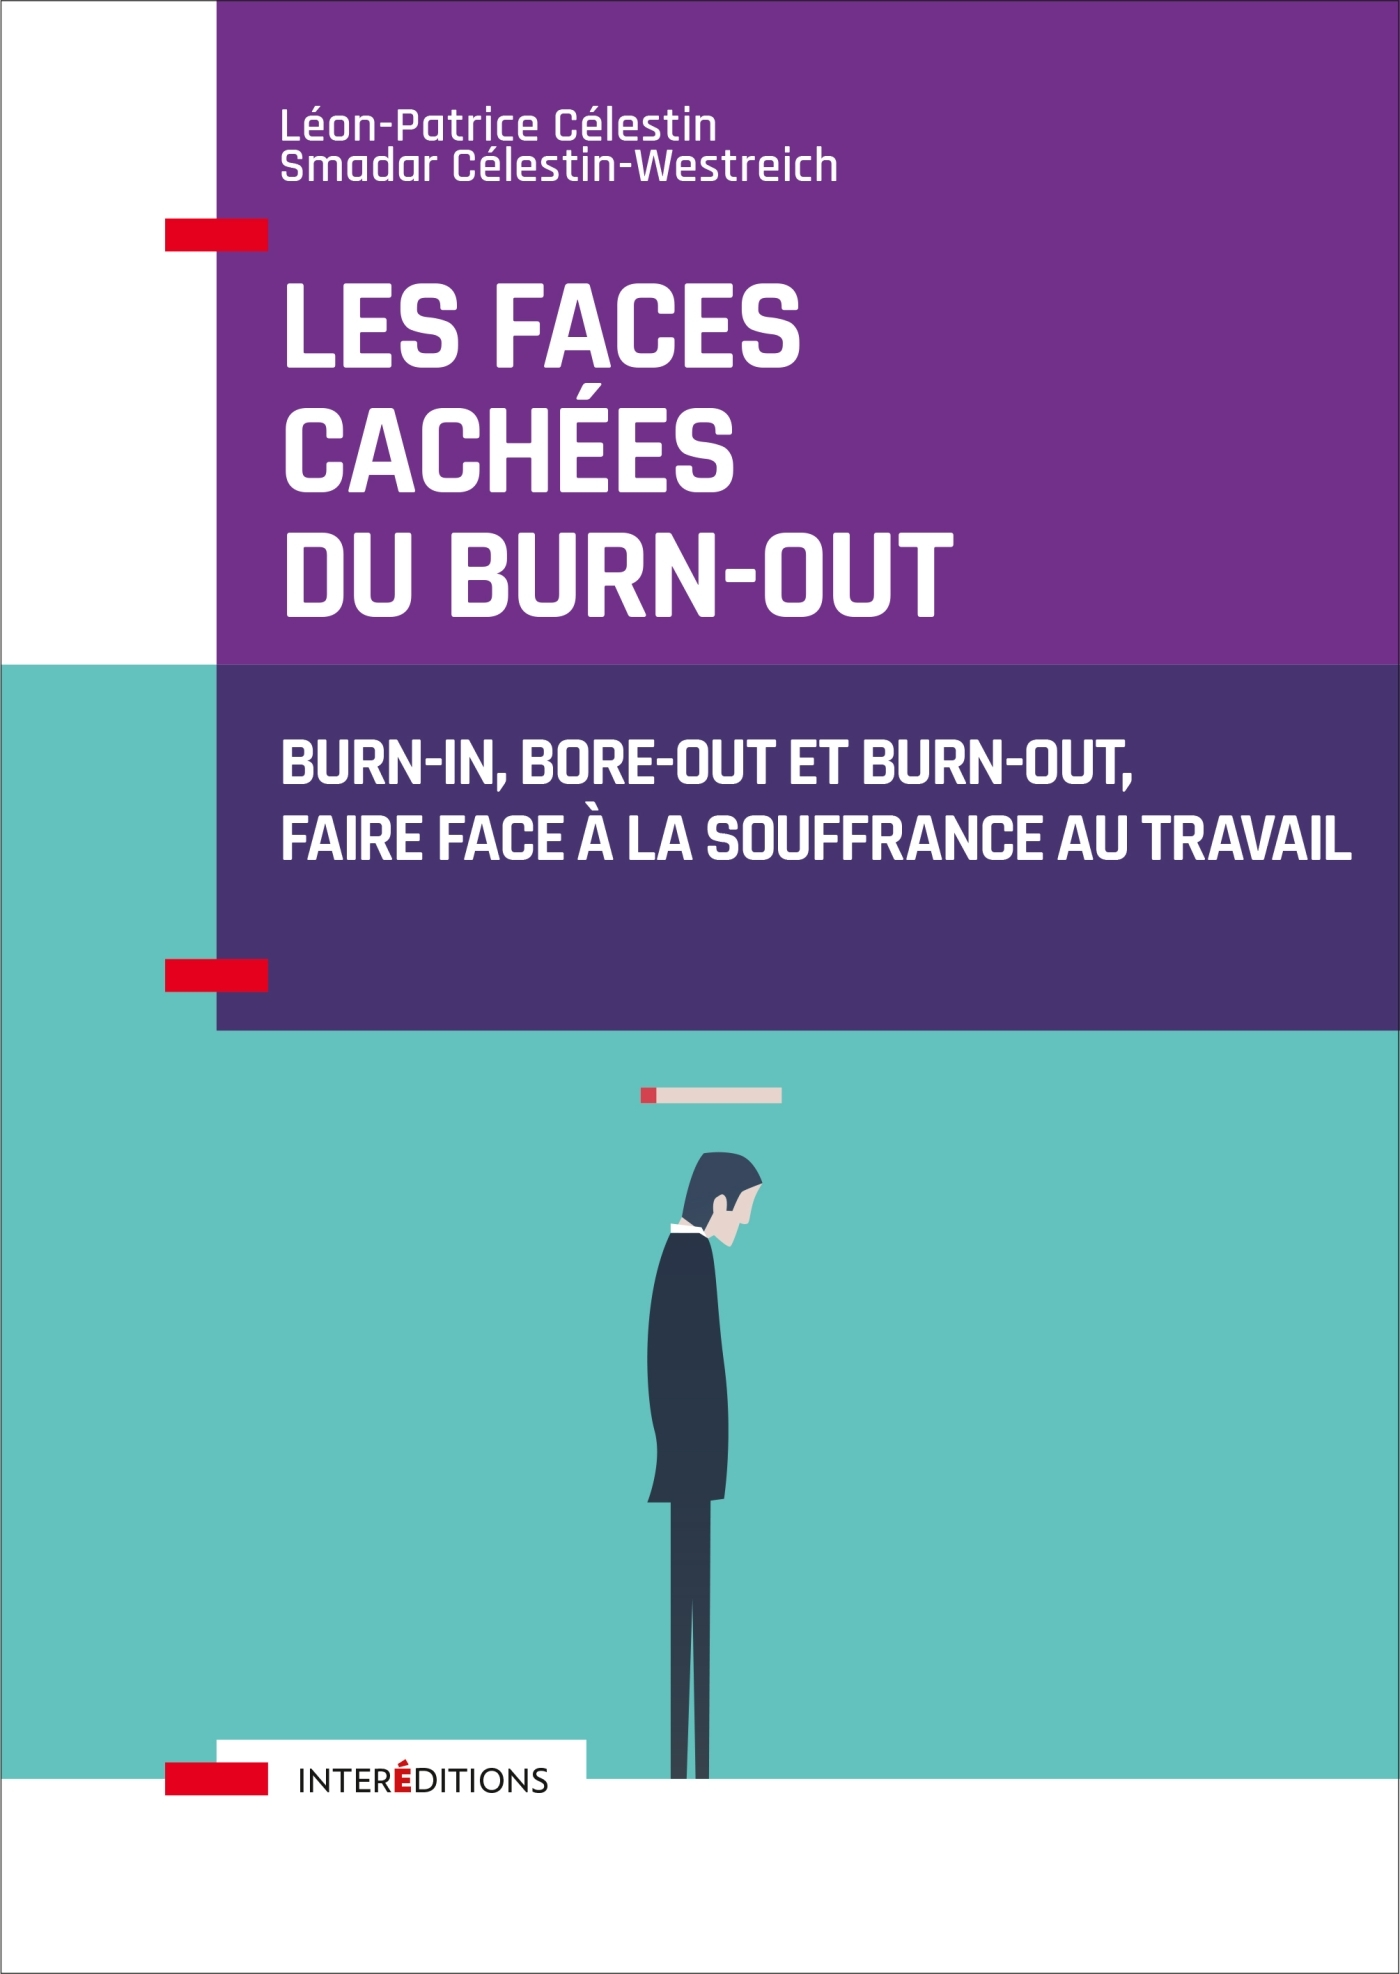 LES FACES CACHEES DU BURN-OUT - BURN-IN, BORE-OUT ET BURN-OUT, FAIRE FACE A LA SOUFFRANCE AU TRAVAIL